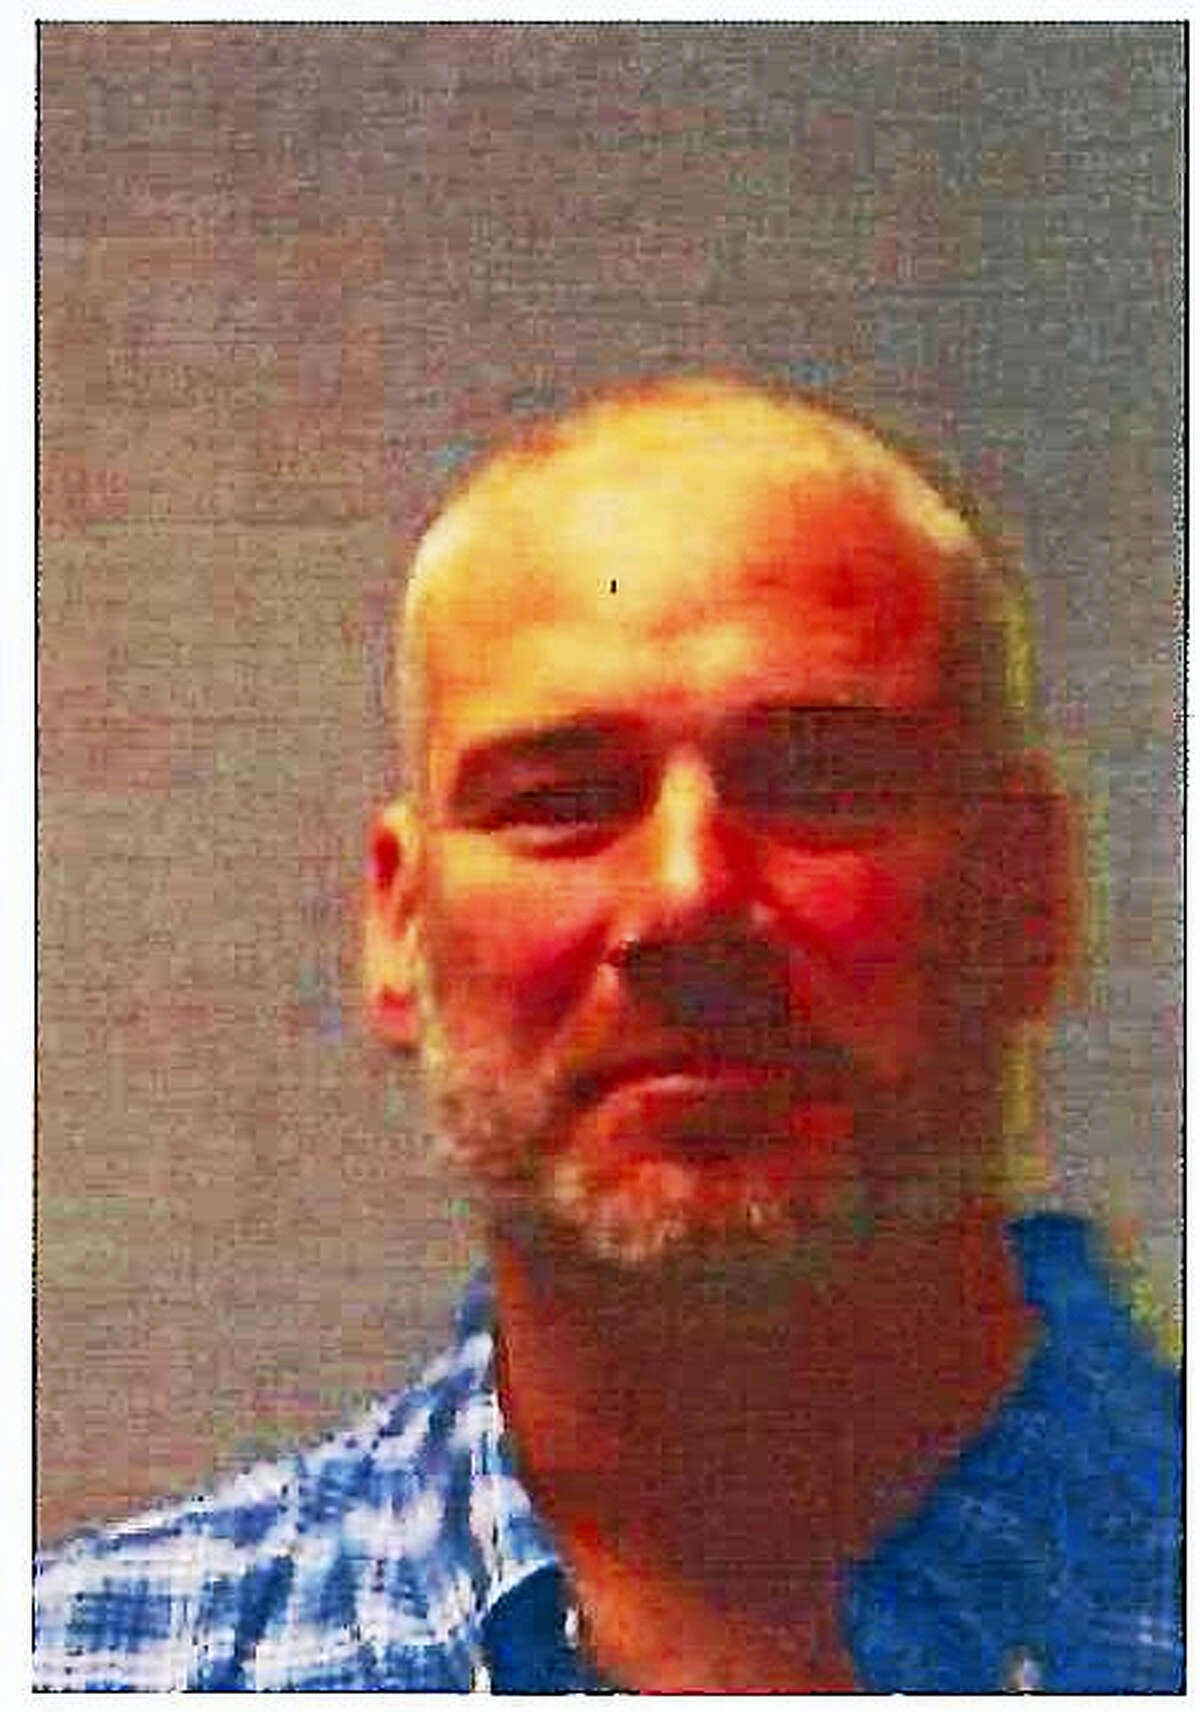 Michael Bourgoin (photo courtesy of Connecticut State Police)